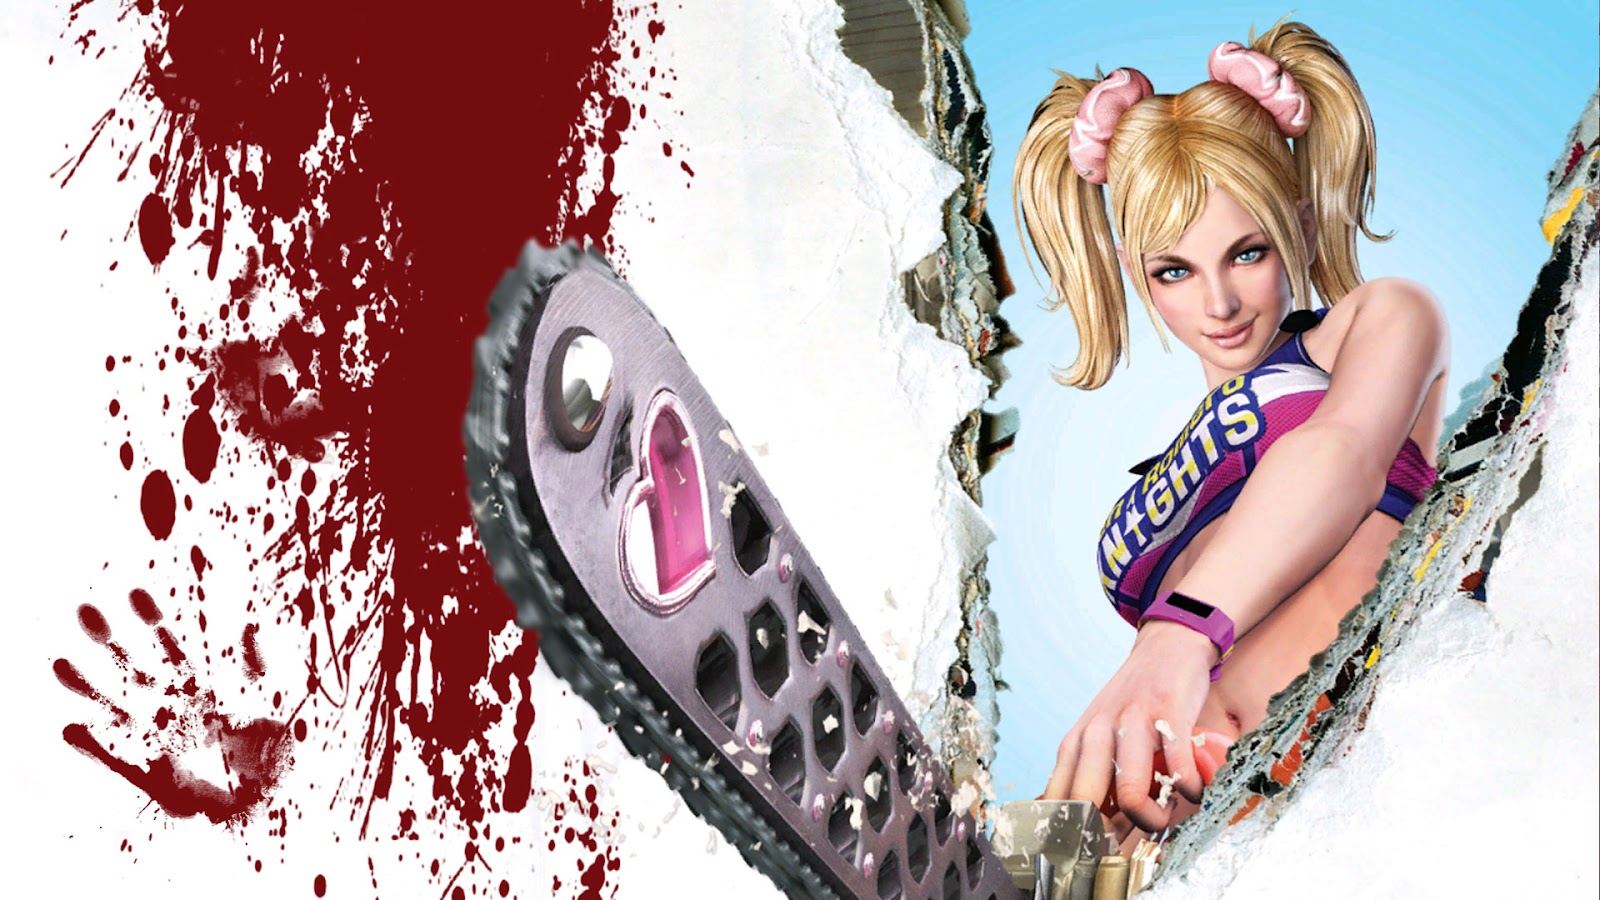 lollipop chainsaw hd wallpaper by jmk1999 d4u85jw Lollipop Chainsaw Wallpapers in HD   1080p